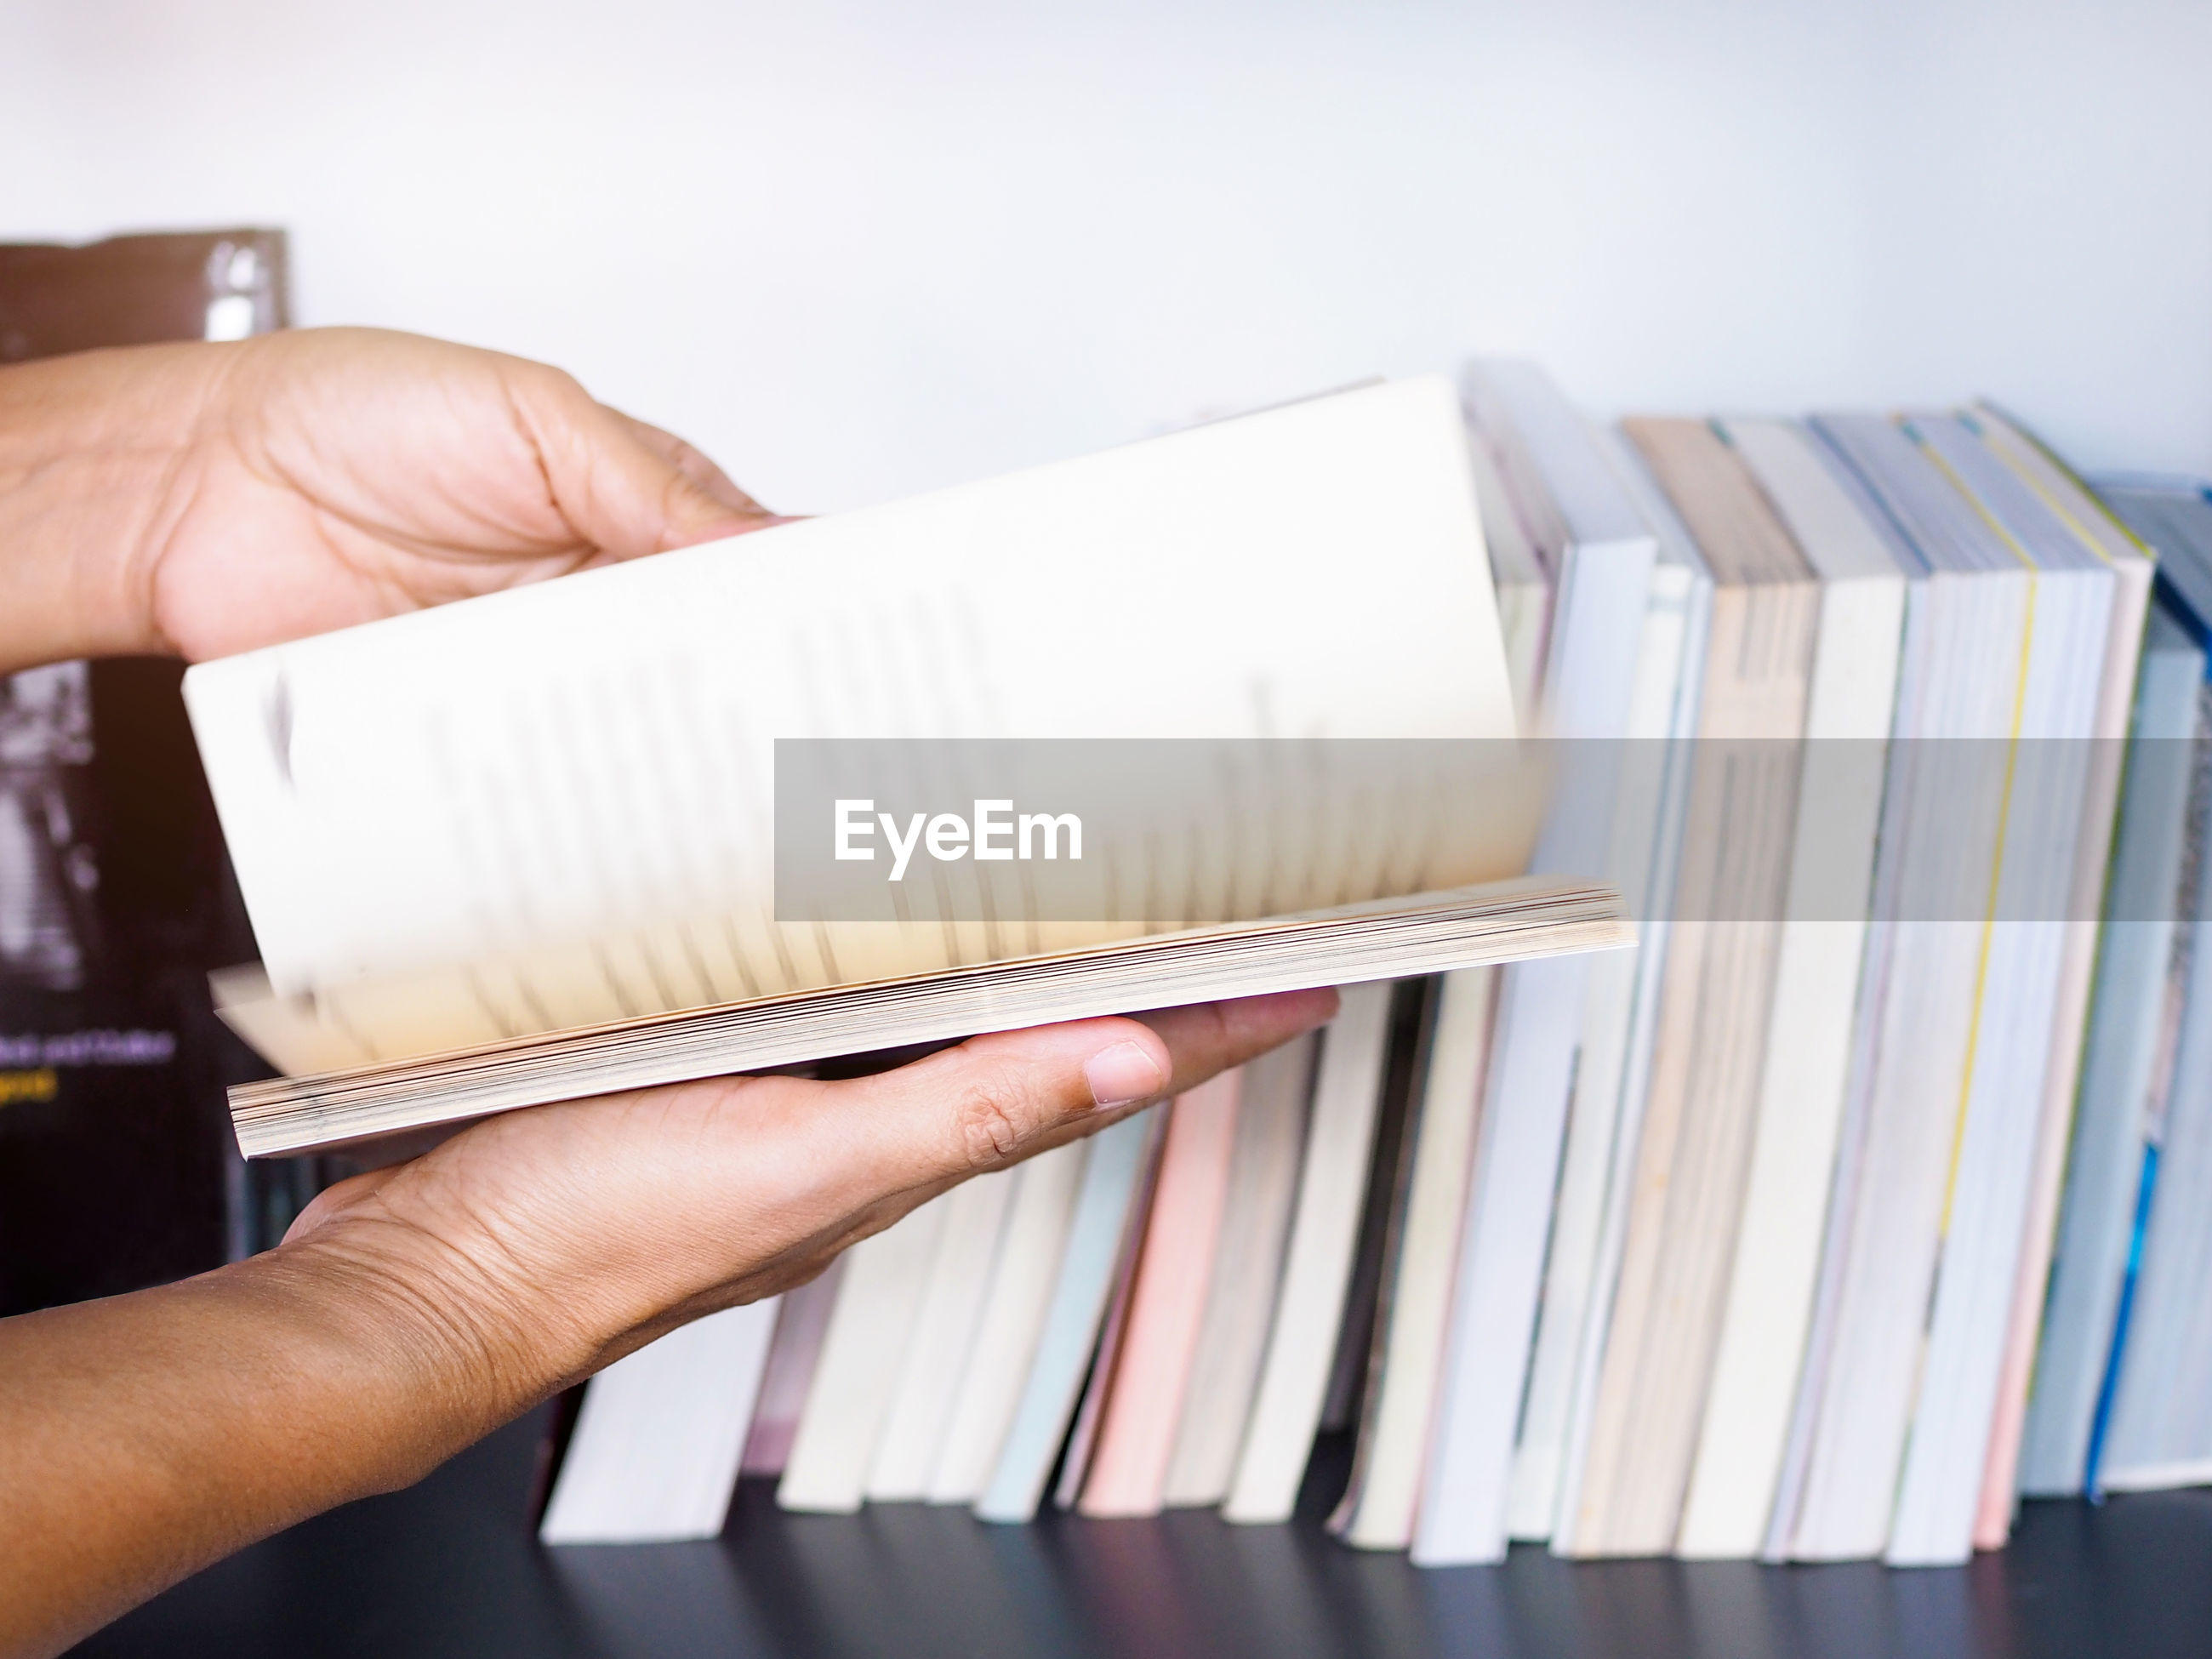 Cropped hands of person holding book